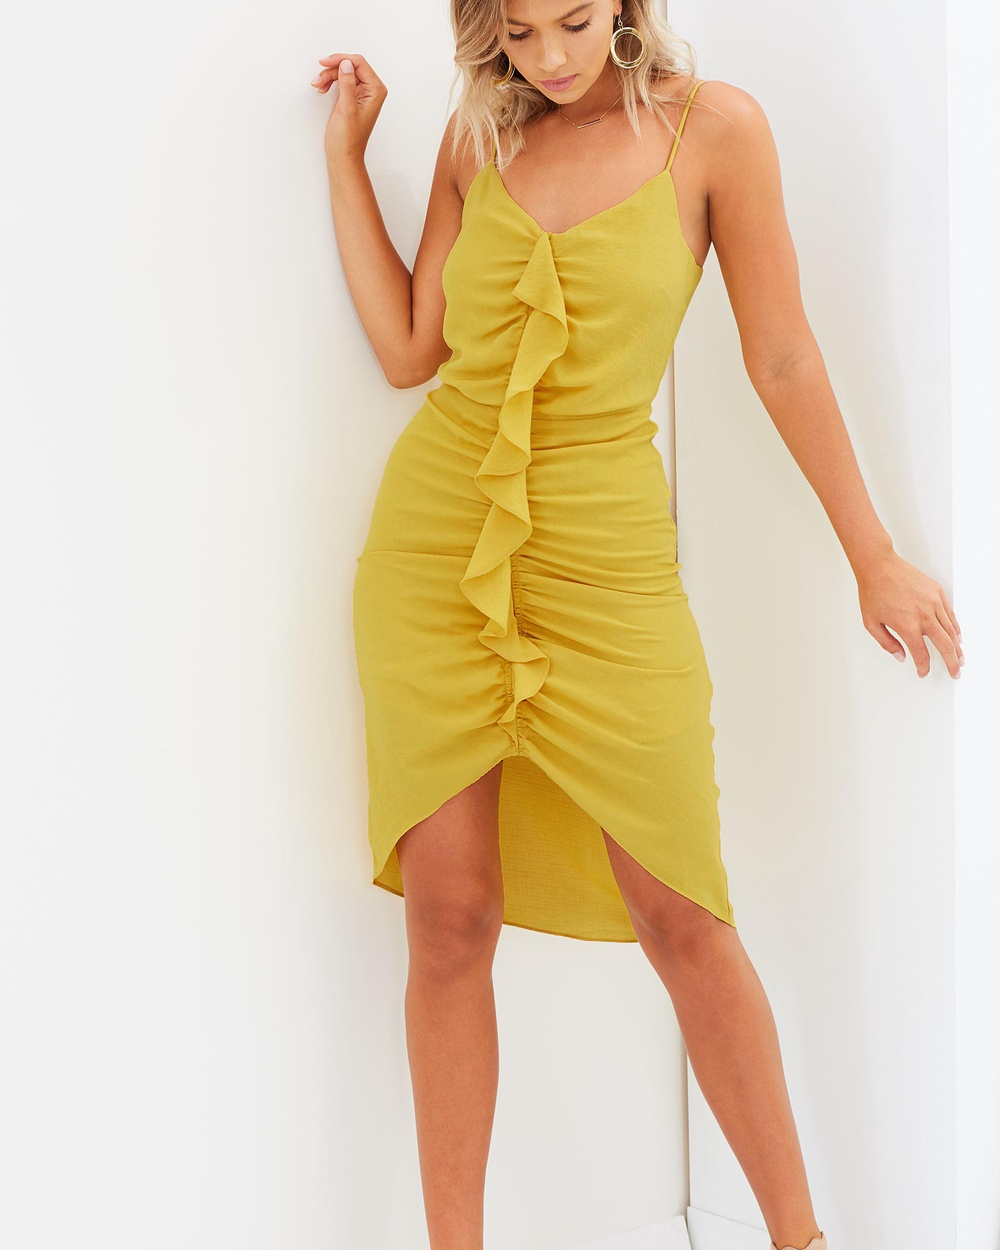 Atmos & Here ICONIC EXCLUSIVE Magnolia Gathered Frill Dress Dresses Sunflower Yellow ICONIC EXCLUSIVE Magnolia Gathered Frill Dress